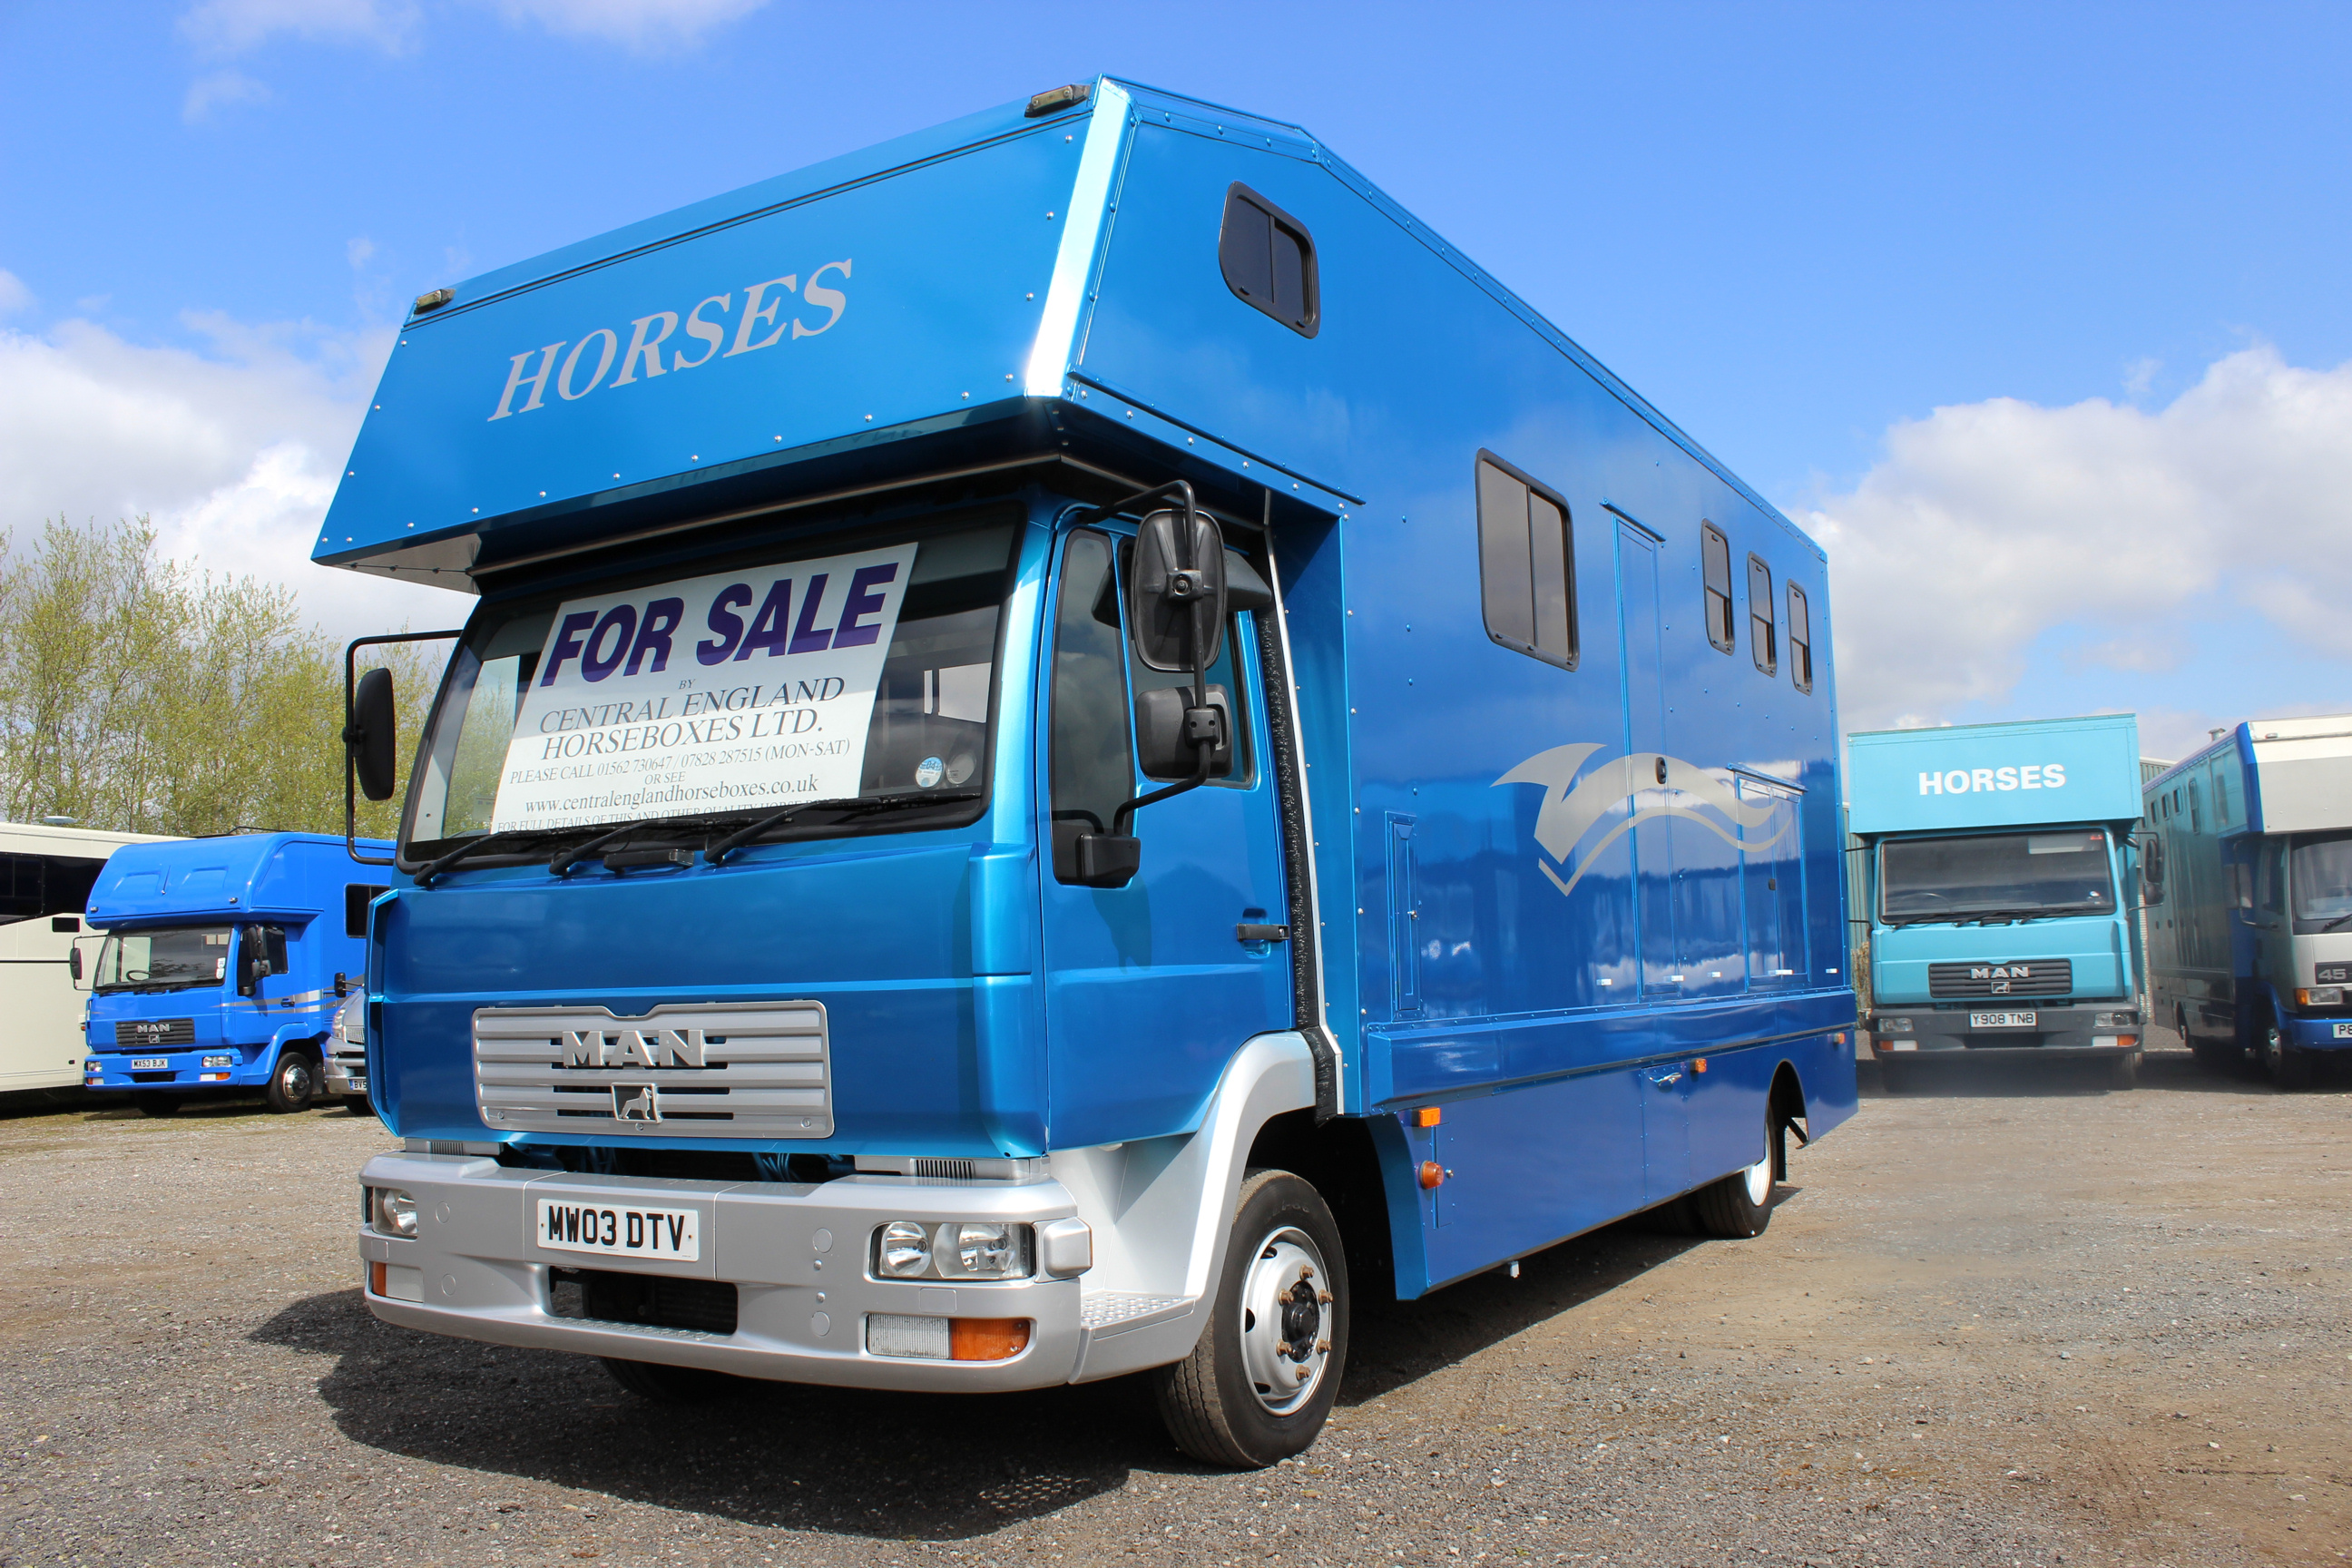 New Conversion 7 5t Man Horsebox Sale Horseboxes For